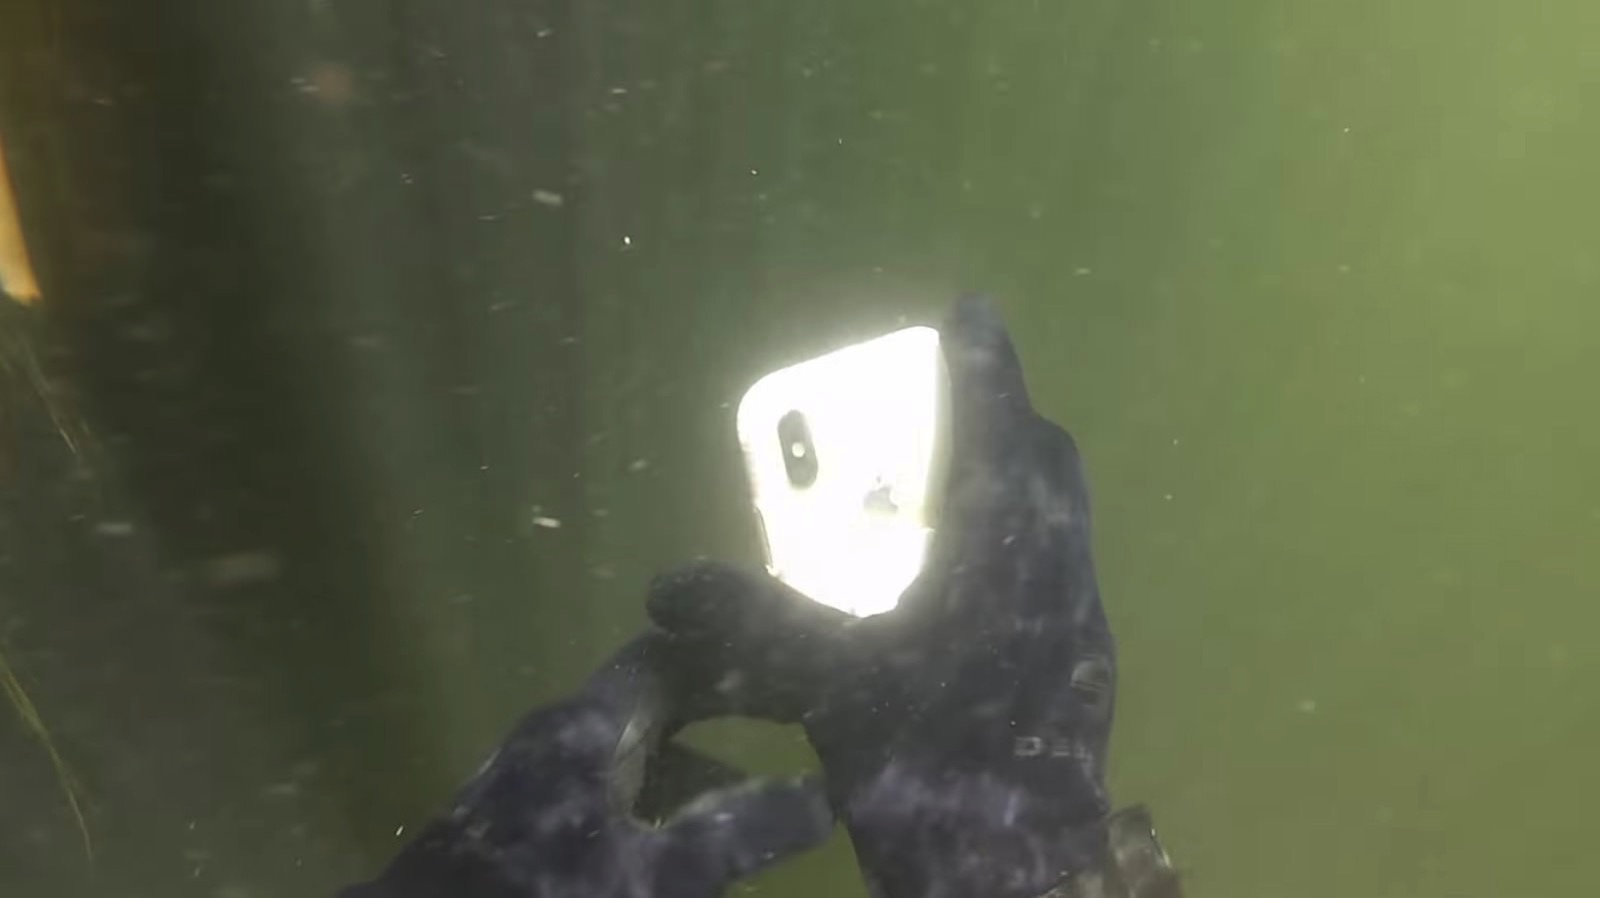 Iphone x found in river after 2 weeks